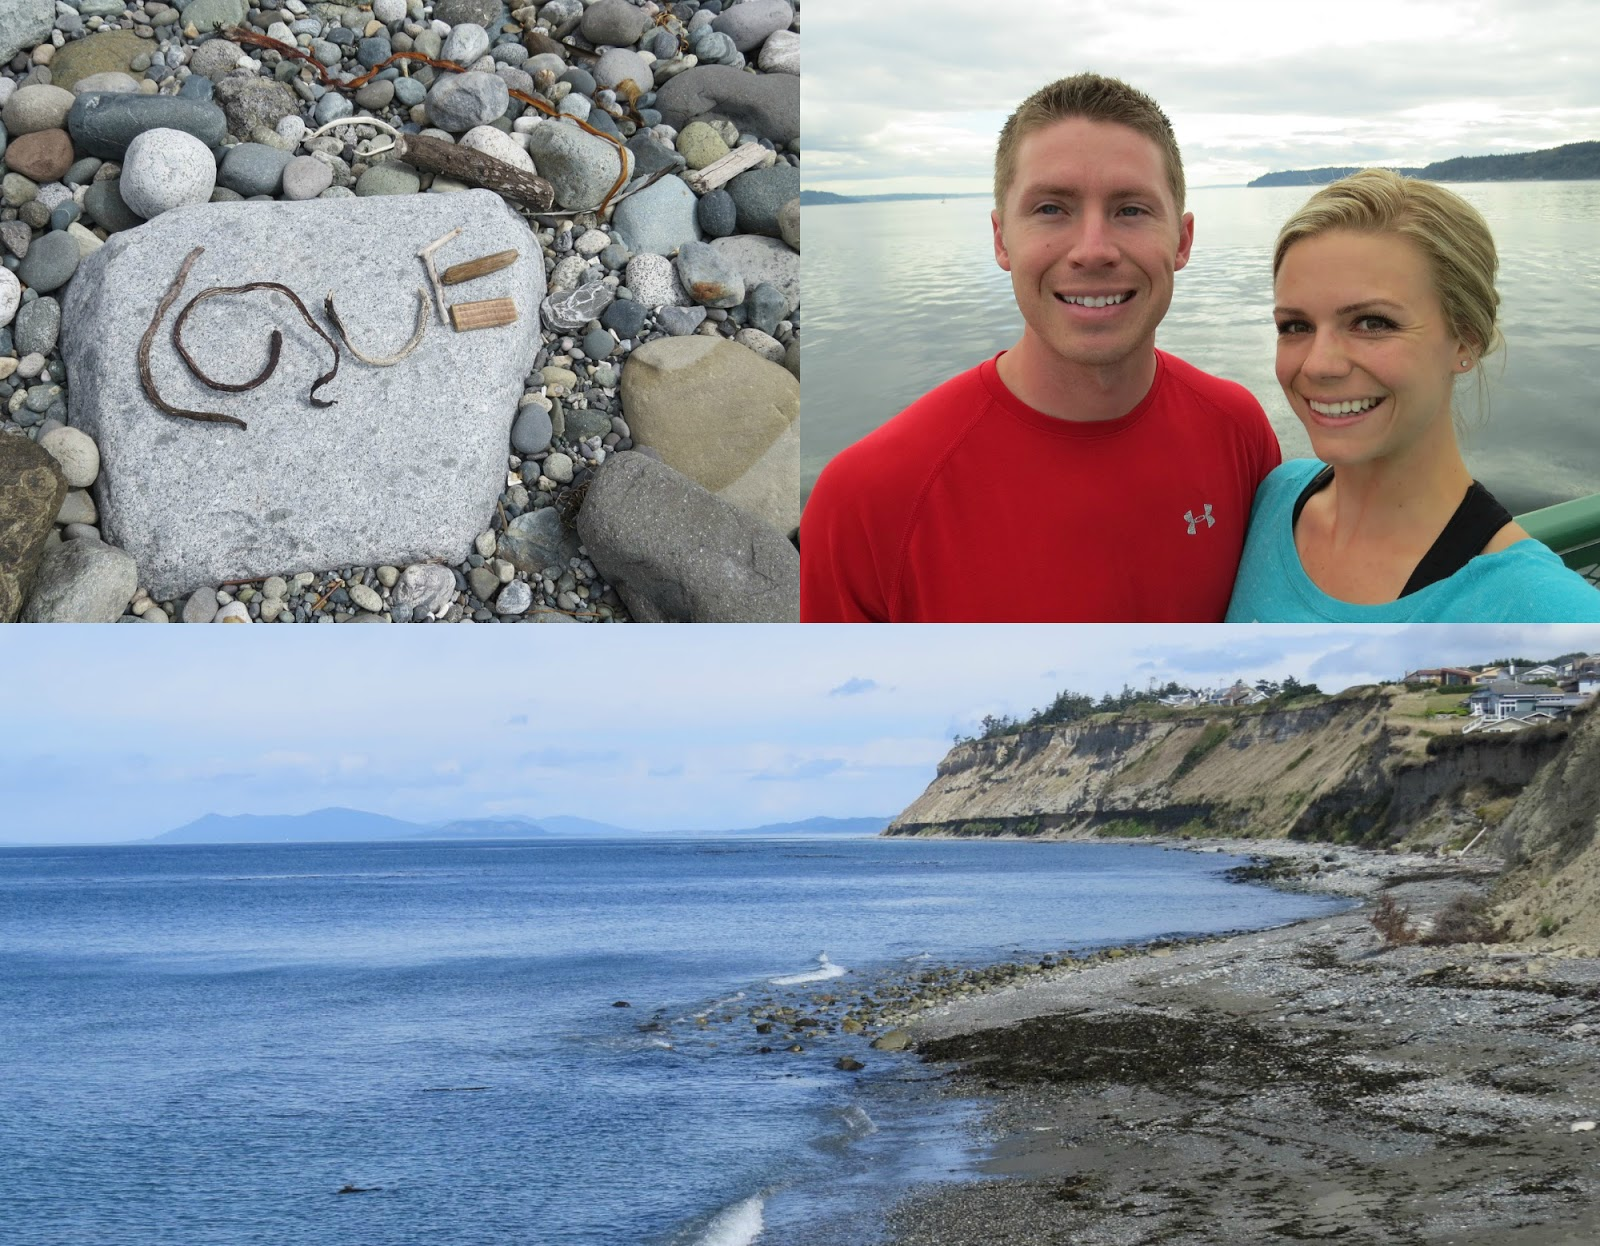 Seattle Road Trip Video Diary, Whidbey Island Trip